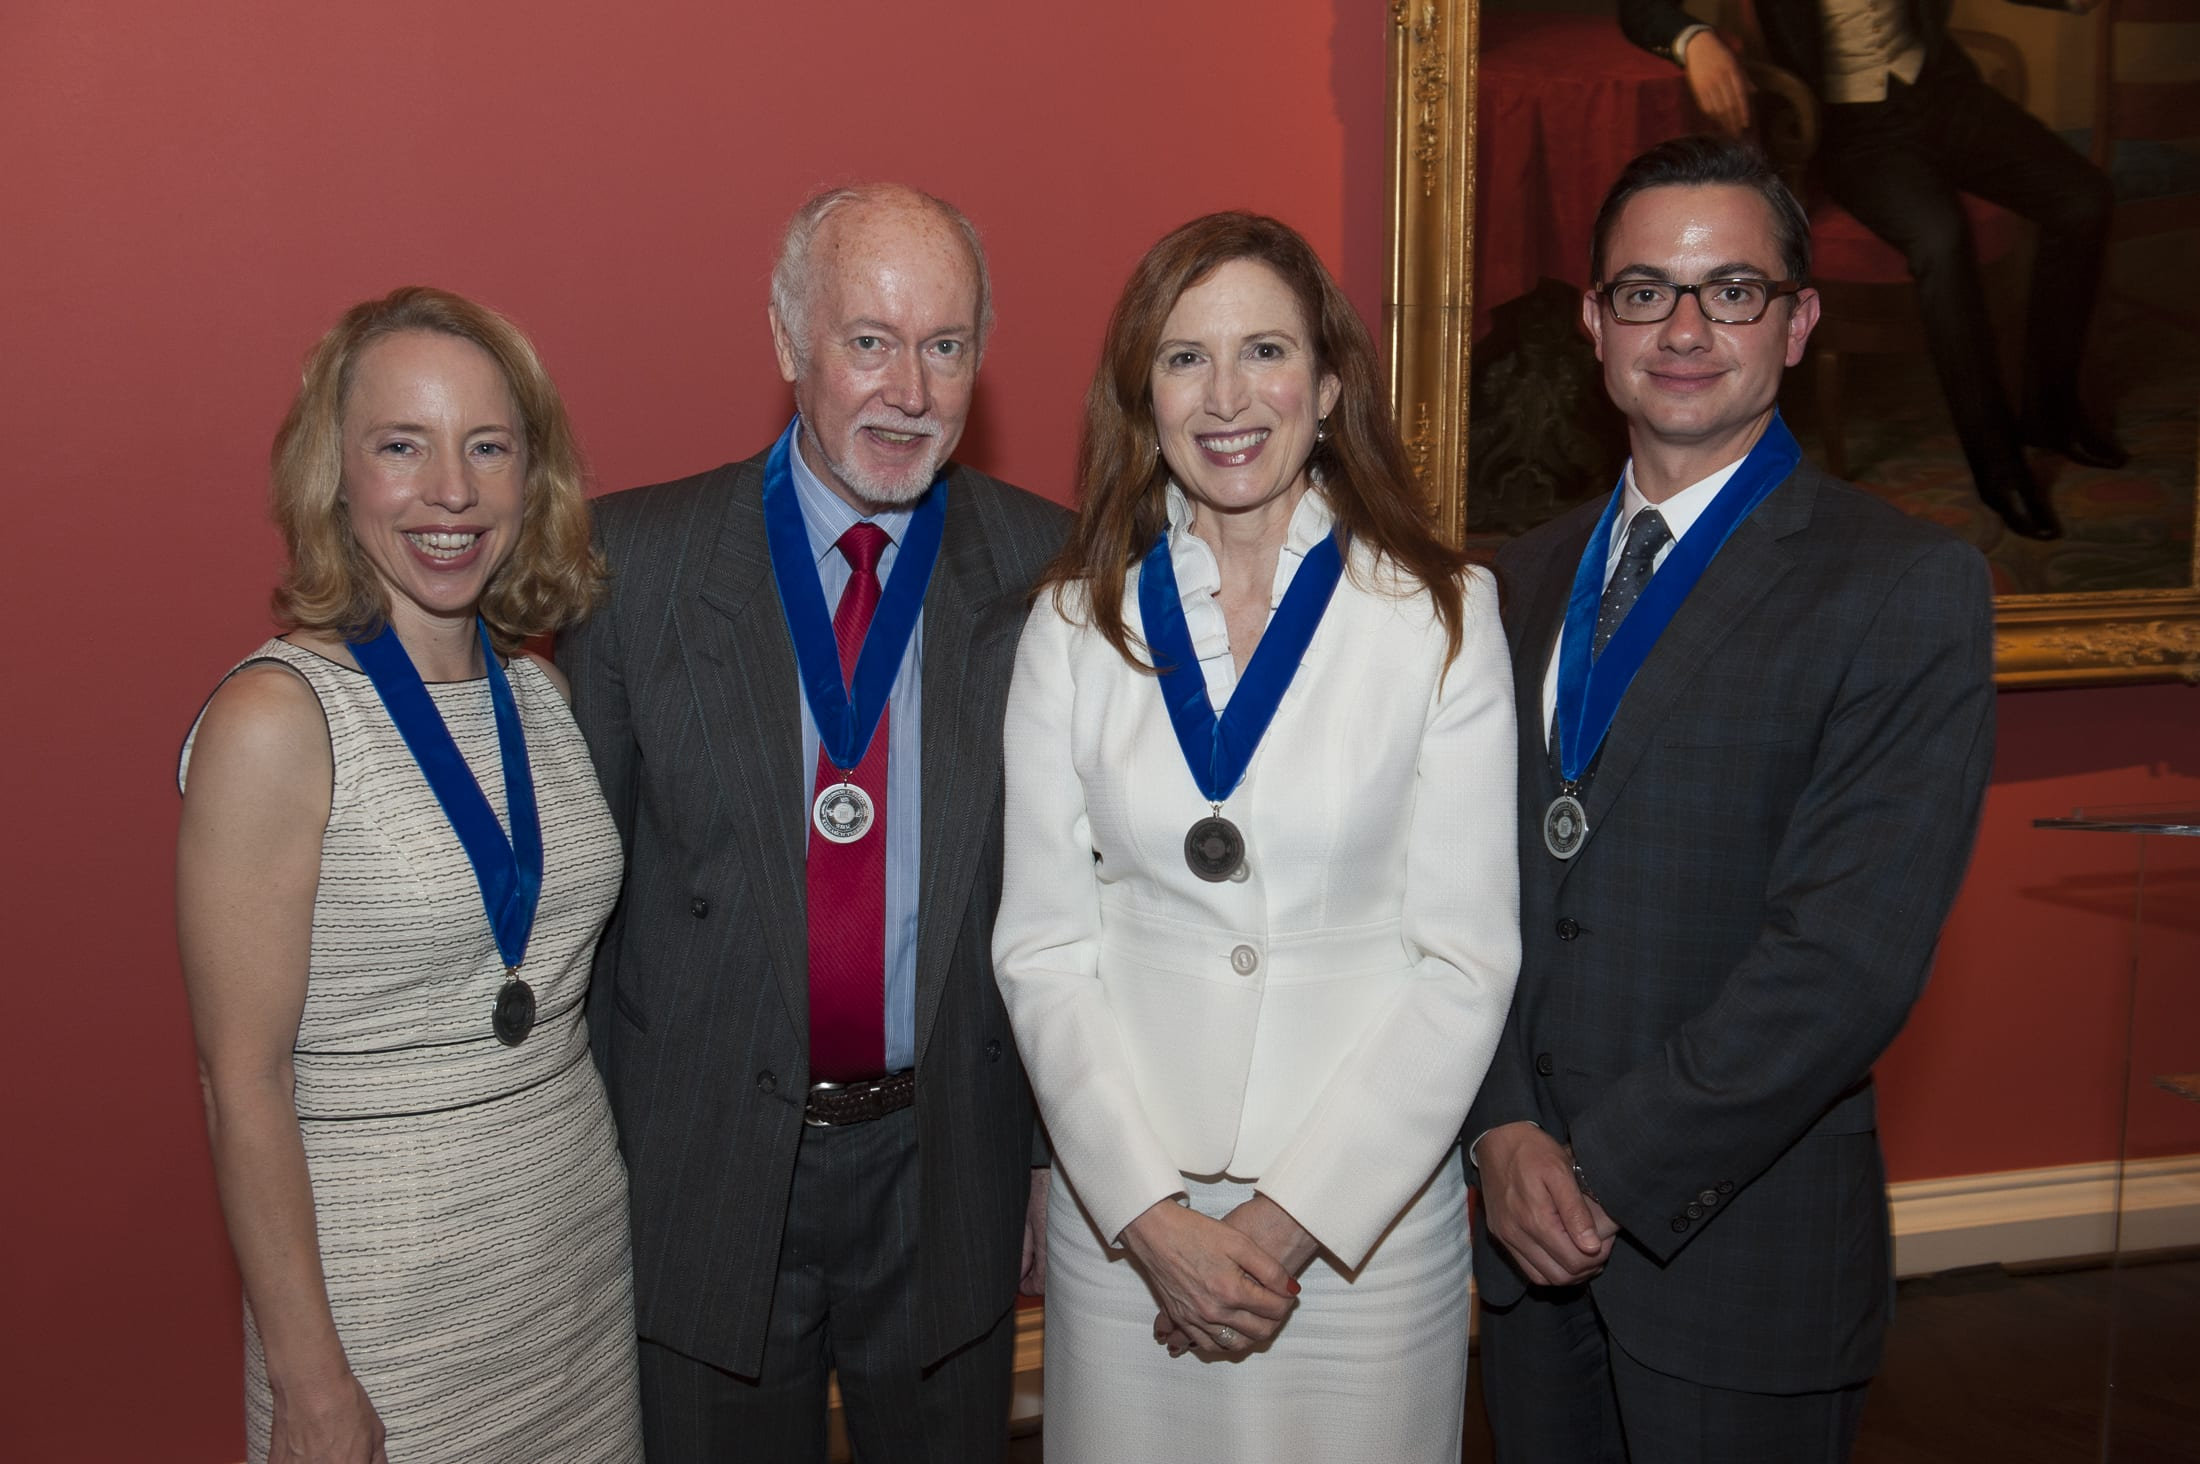 SMU named four 2014 Ford Research Fellows at a meeting of its Board of Trustees Thursday, May 8 (l to r): Alexis McCrossen, Dieter Cremer, Alyce McKenzie and Anthony Colangelo. Photo credit: SMU/Hillsman S. Jackson.